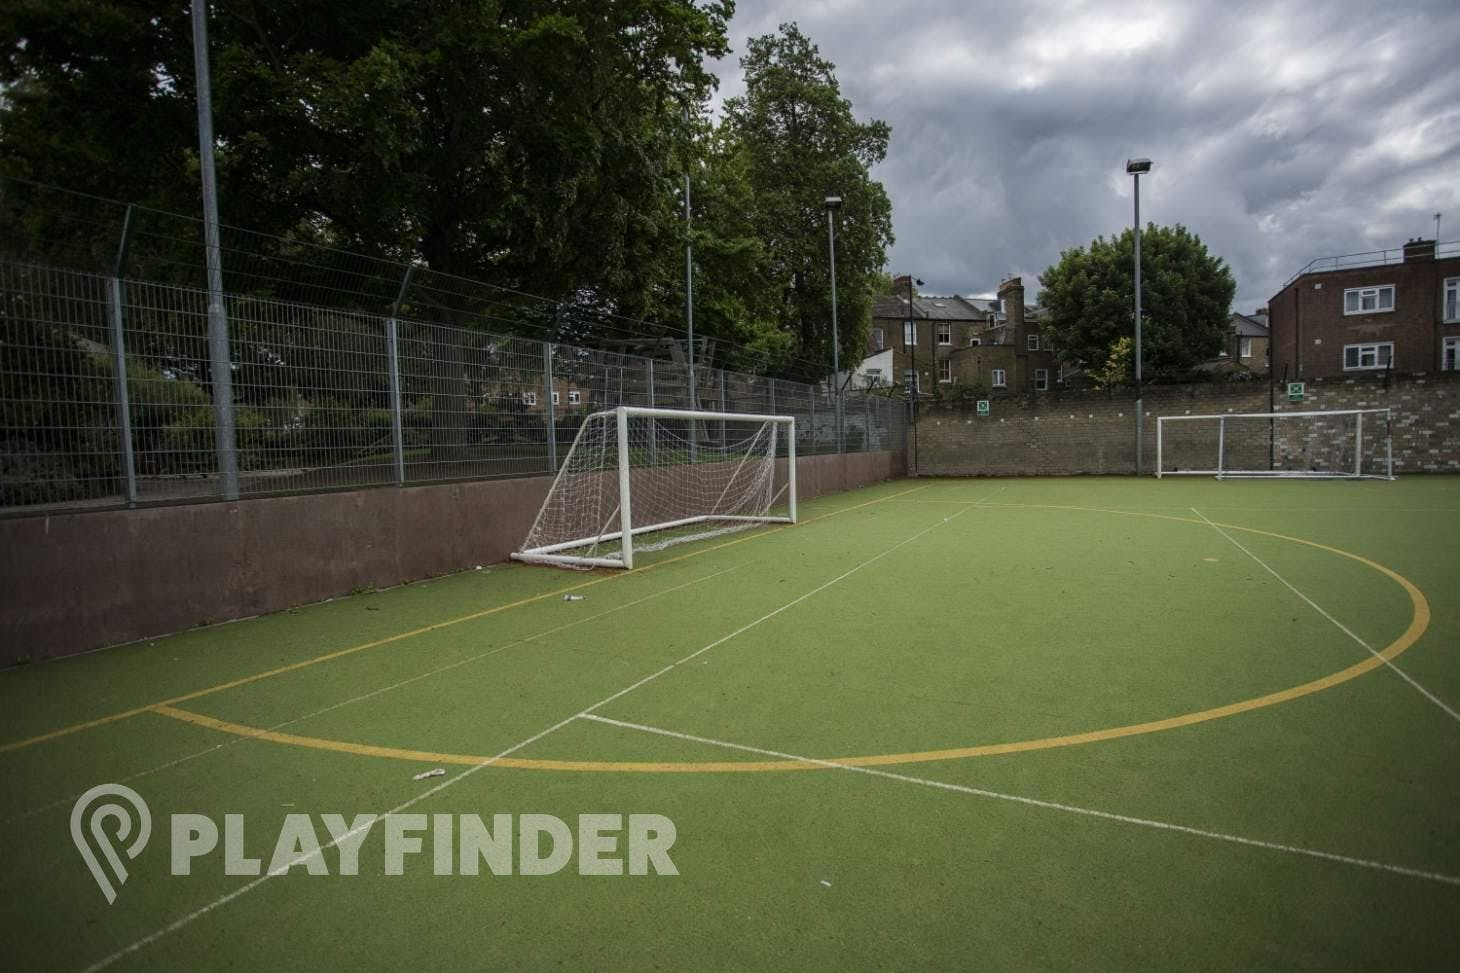 Acland Burghley School 5 a side | Astroturf football pitch